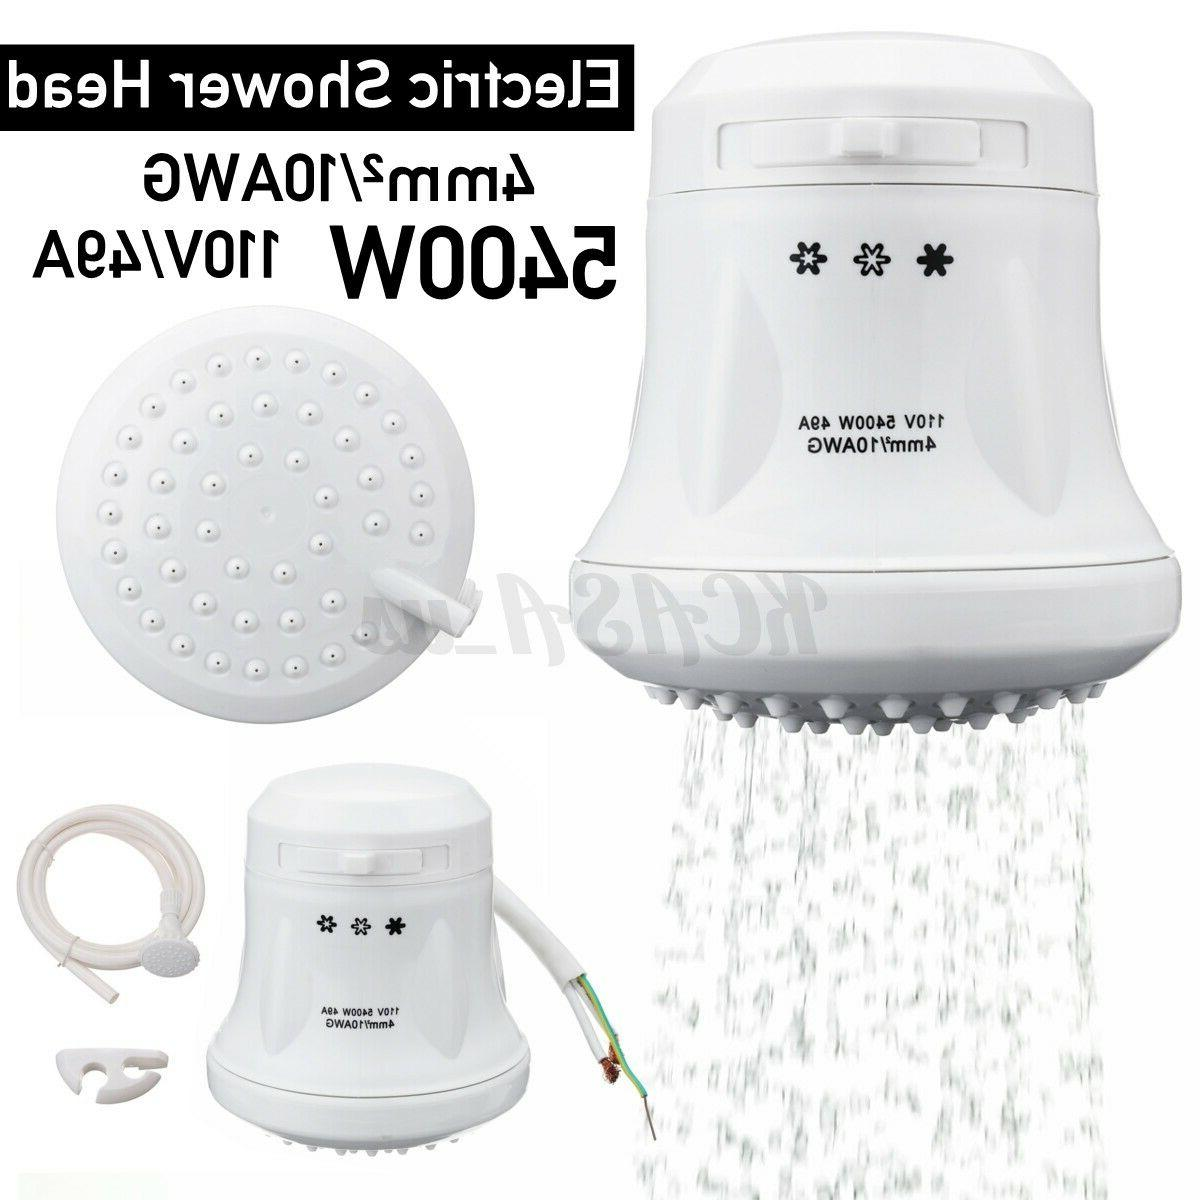 110v electric shower head instant hot water